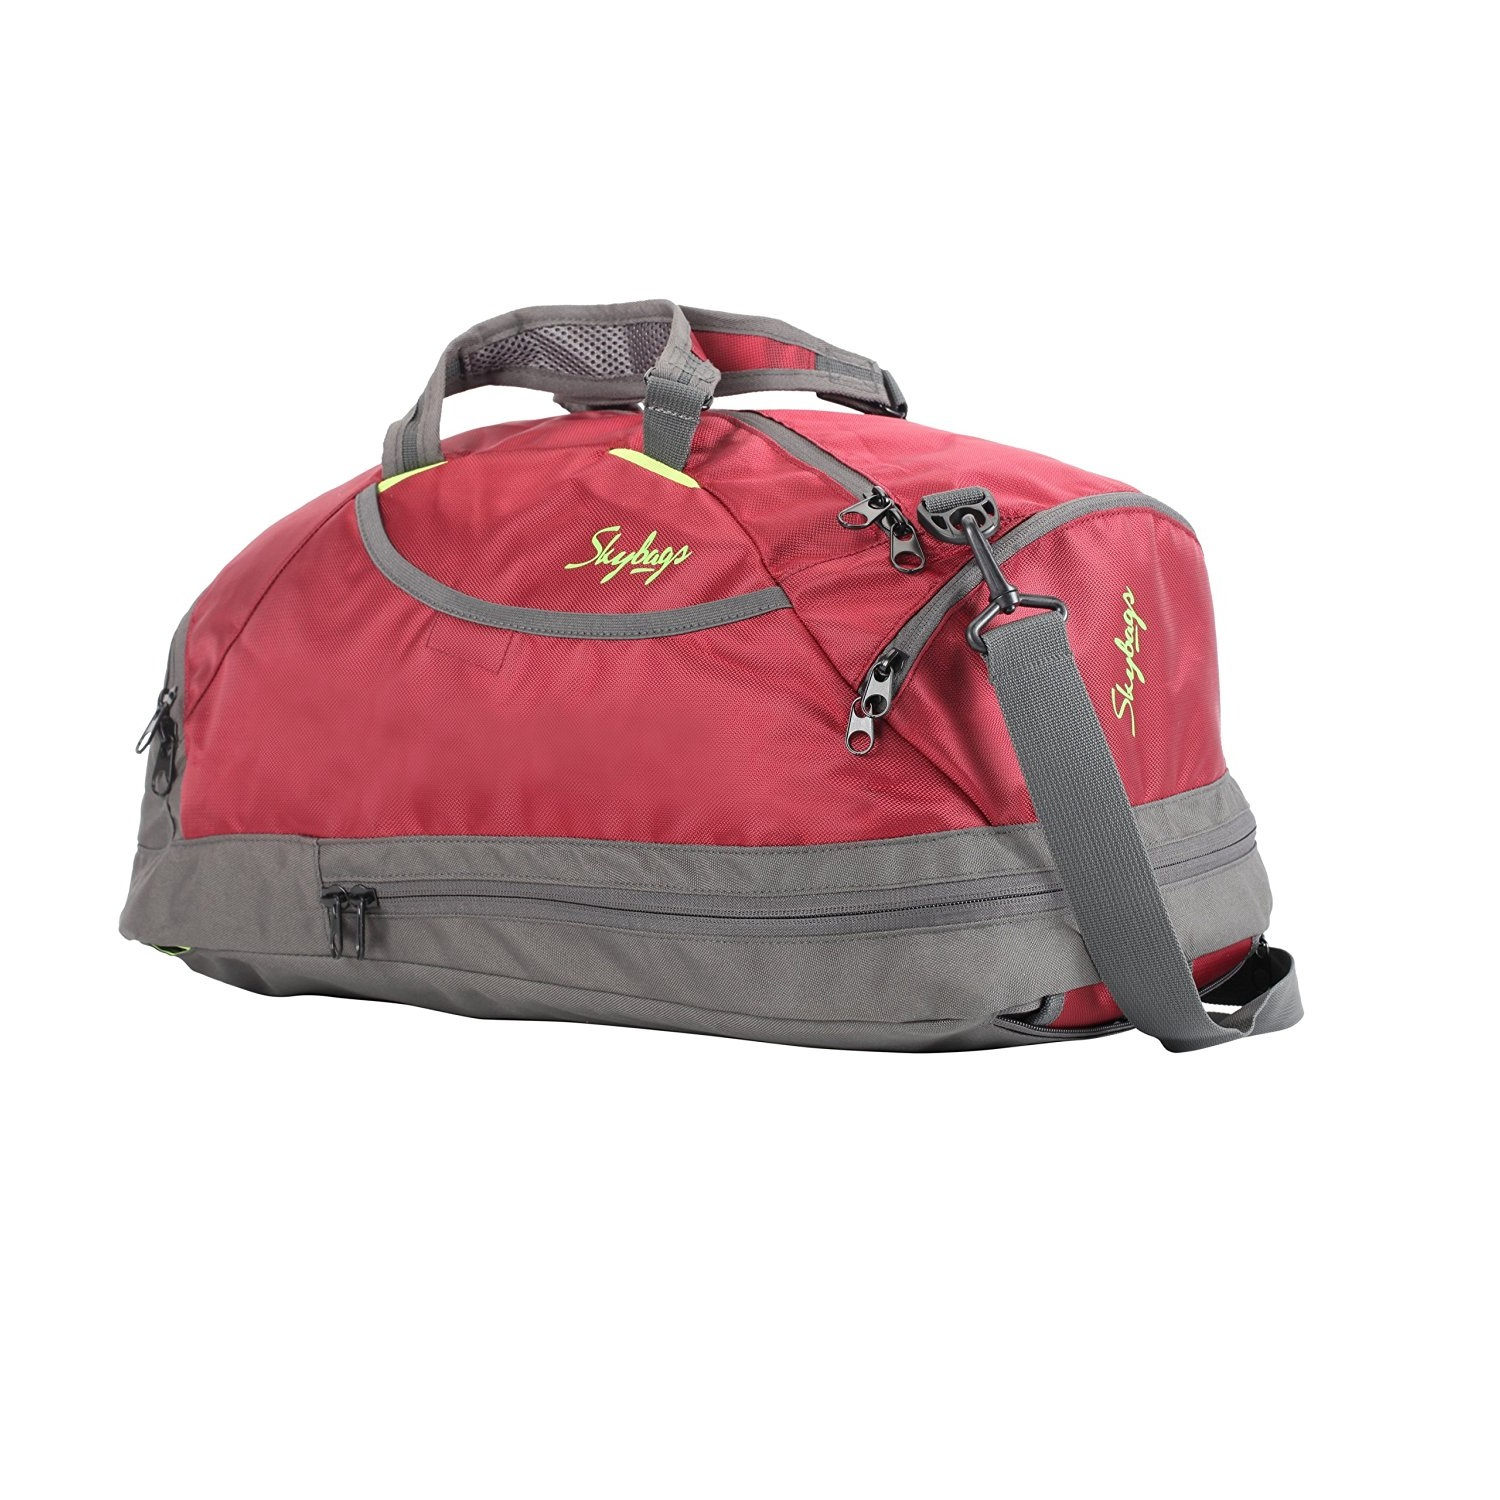 6abc107b407e ... Skybags flip 3 way duffle hiking bags red. prev